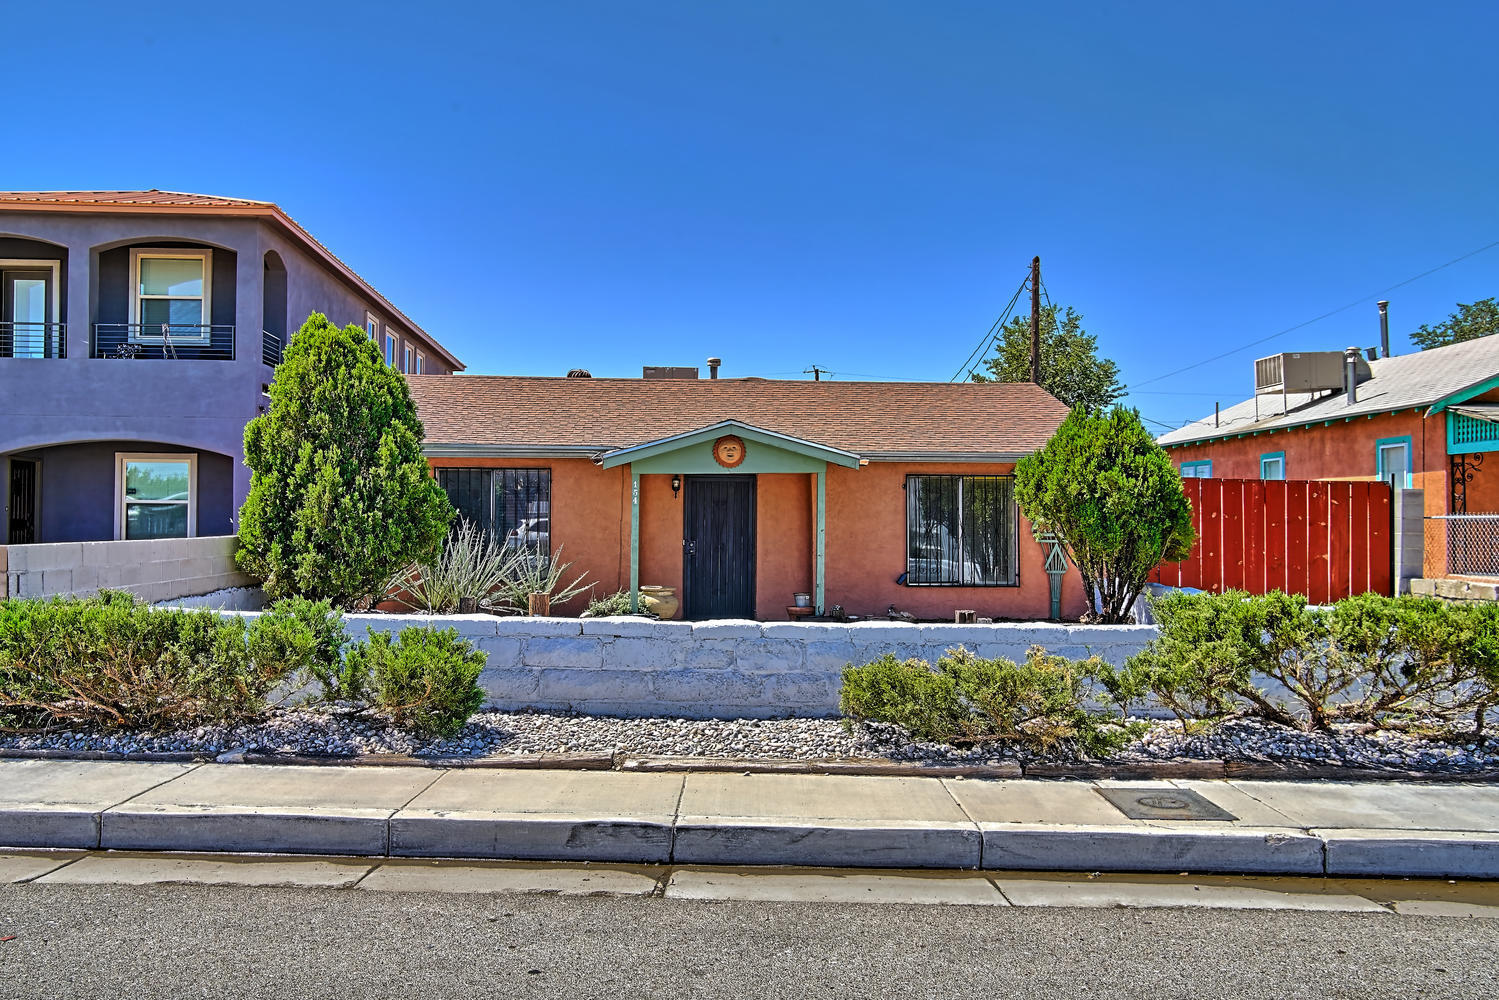 Warm and welcoming partial adobe home in North Valley.  Adobe built in 1946 with frame/stucco addition in 1980's. Superb side yard access on this .22 acre lot with large 2 car carport.   Lots of room for gardening.  Living room/dining room looks into a kitchen w/enough room for the entire family to cook together, plenty of counter space! Tons of cabinets too!  Breakfast bar on one end so one can  keep the cooks company.  Large can pantry adjacent to utility room which can accommodate a freezer as well as the washer/dryer.   Good storage throughout home.  Roof, furnace and Master cool were replaced approximately 12 years ago.  Stucco was recently redone.  Home is being sold in ''AS IS''  condition & needs updating.  Zoned R-M which allows for other uses.  Valley walking/biking trails.